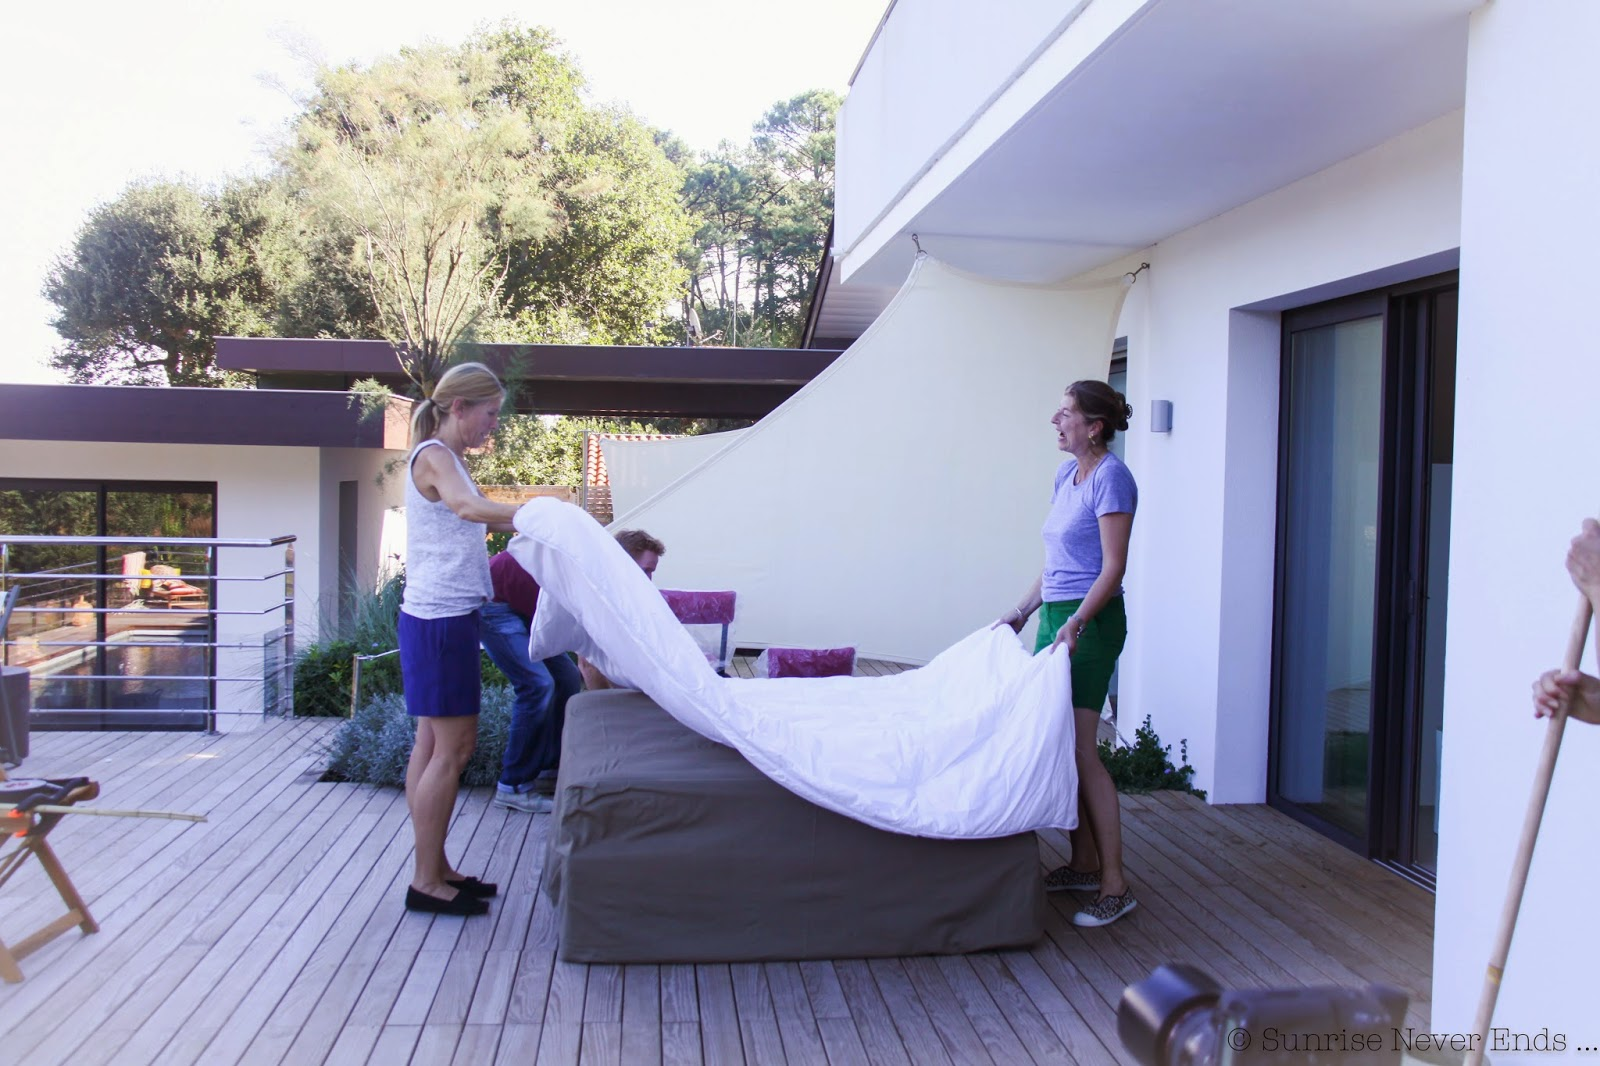 bensimon,la redoute,collaboration,été 2015,summer 2015,déco,linge de maison,hossegor,making off,lake loft hossegor